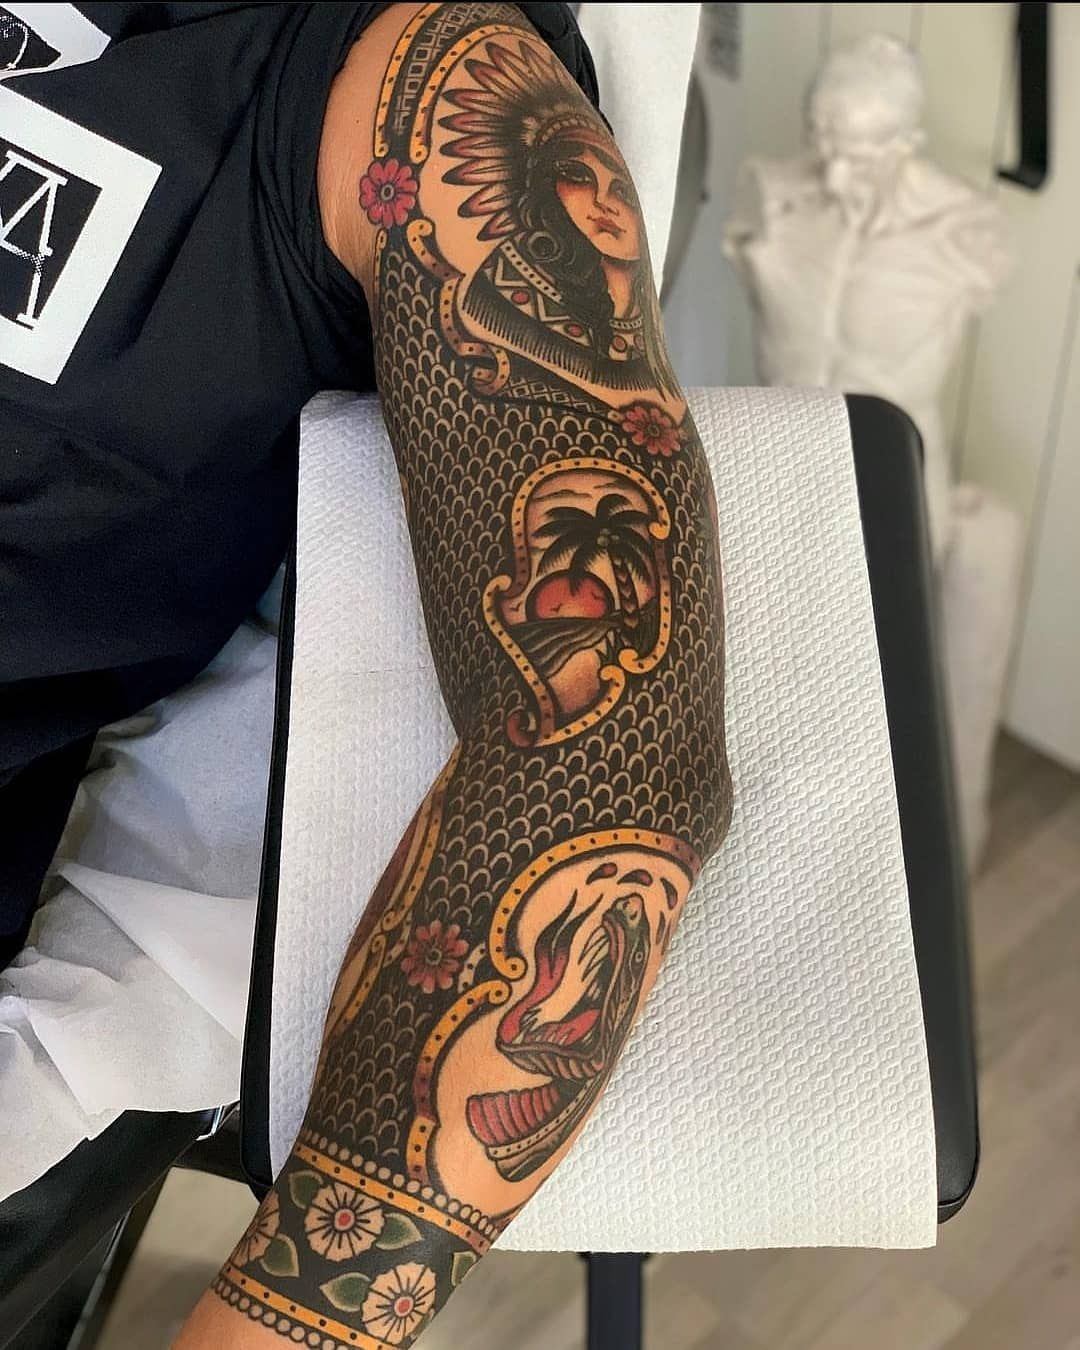 Old School Tattoos On Instagram Rate This Sleeve From 1 To 10 Tag A Friend Wh In 2020 Traditional Tattoo Sleeve Old School Tattoo Designs Traditional Tattoo Man